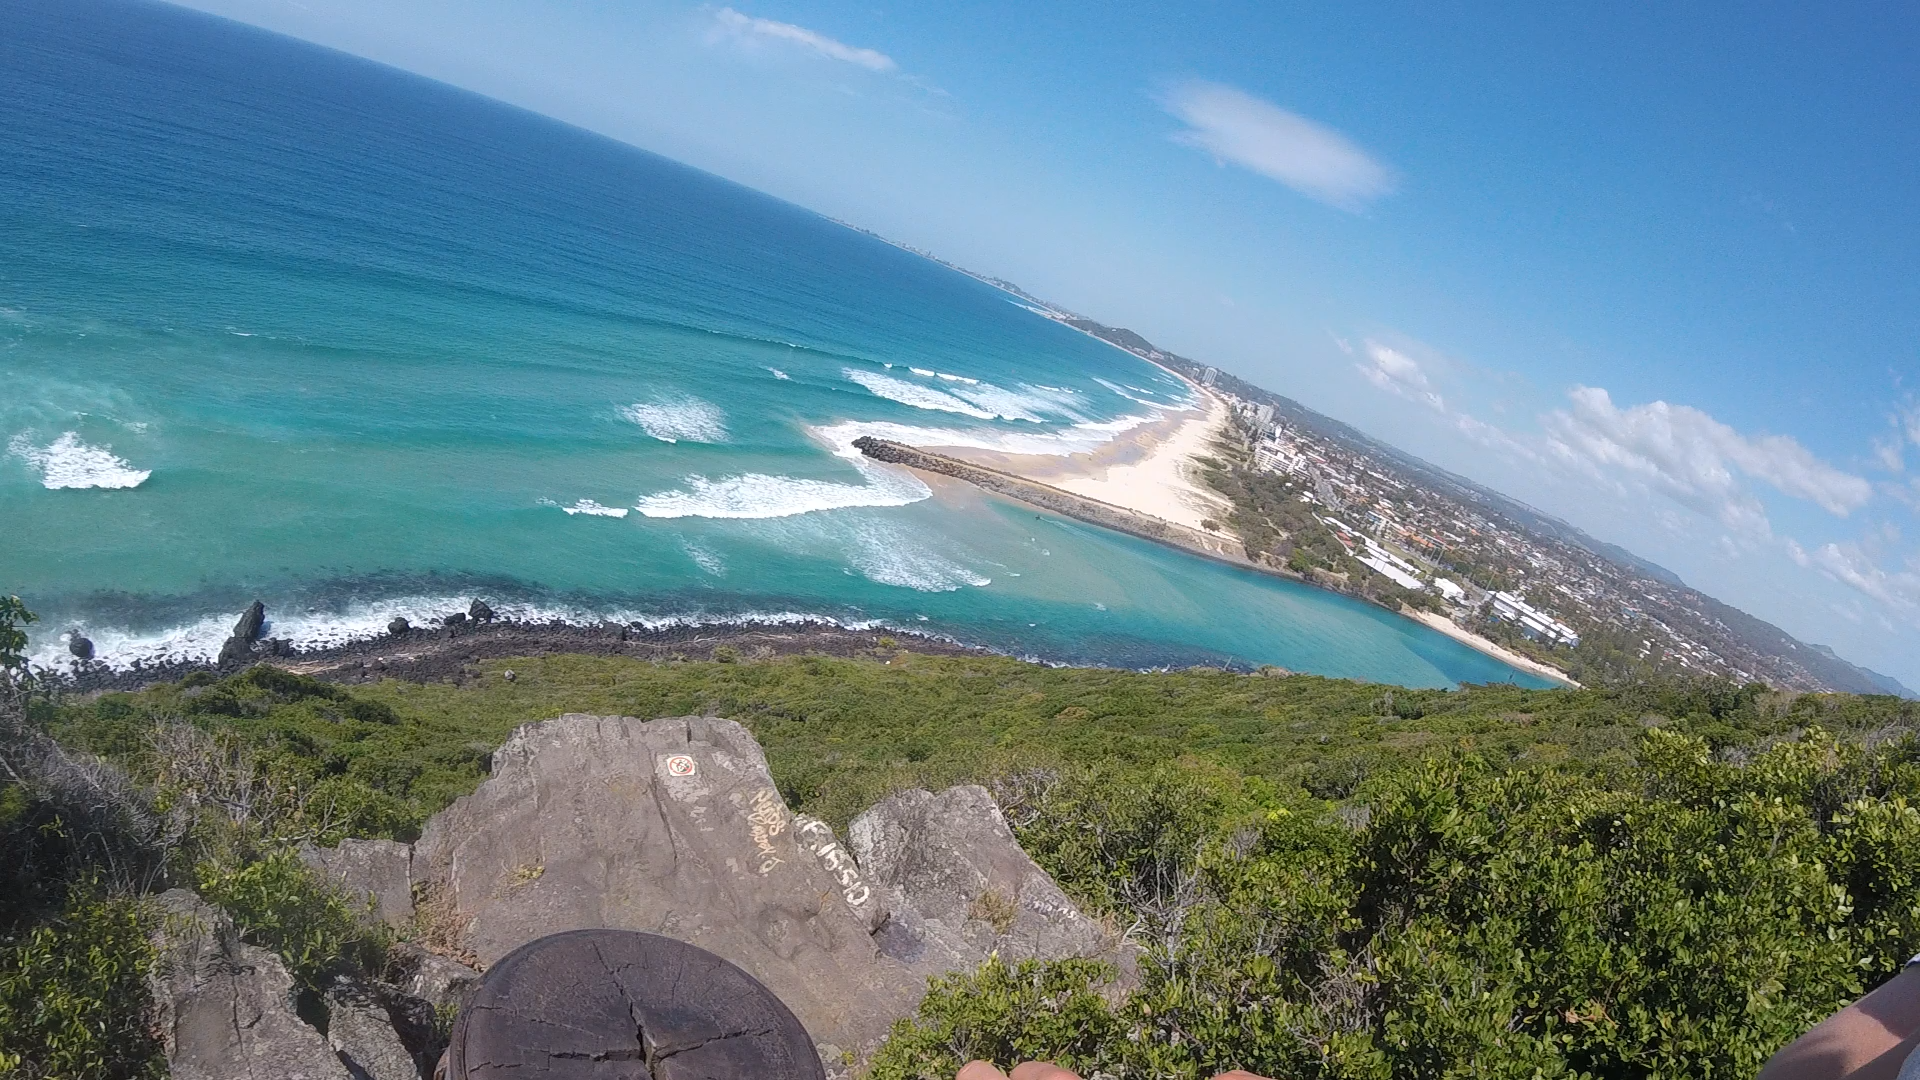 The view at the top of Burleigh Heads.